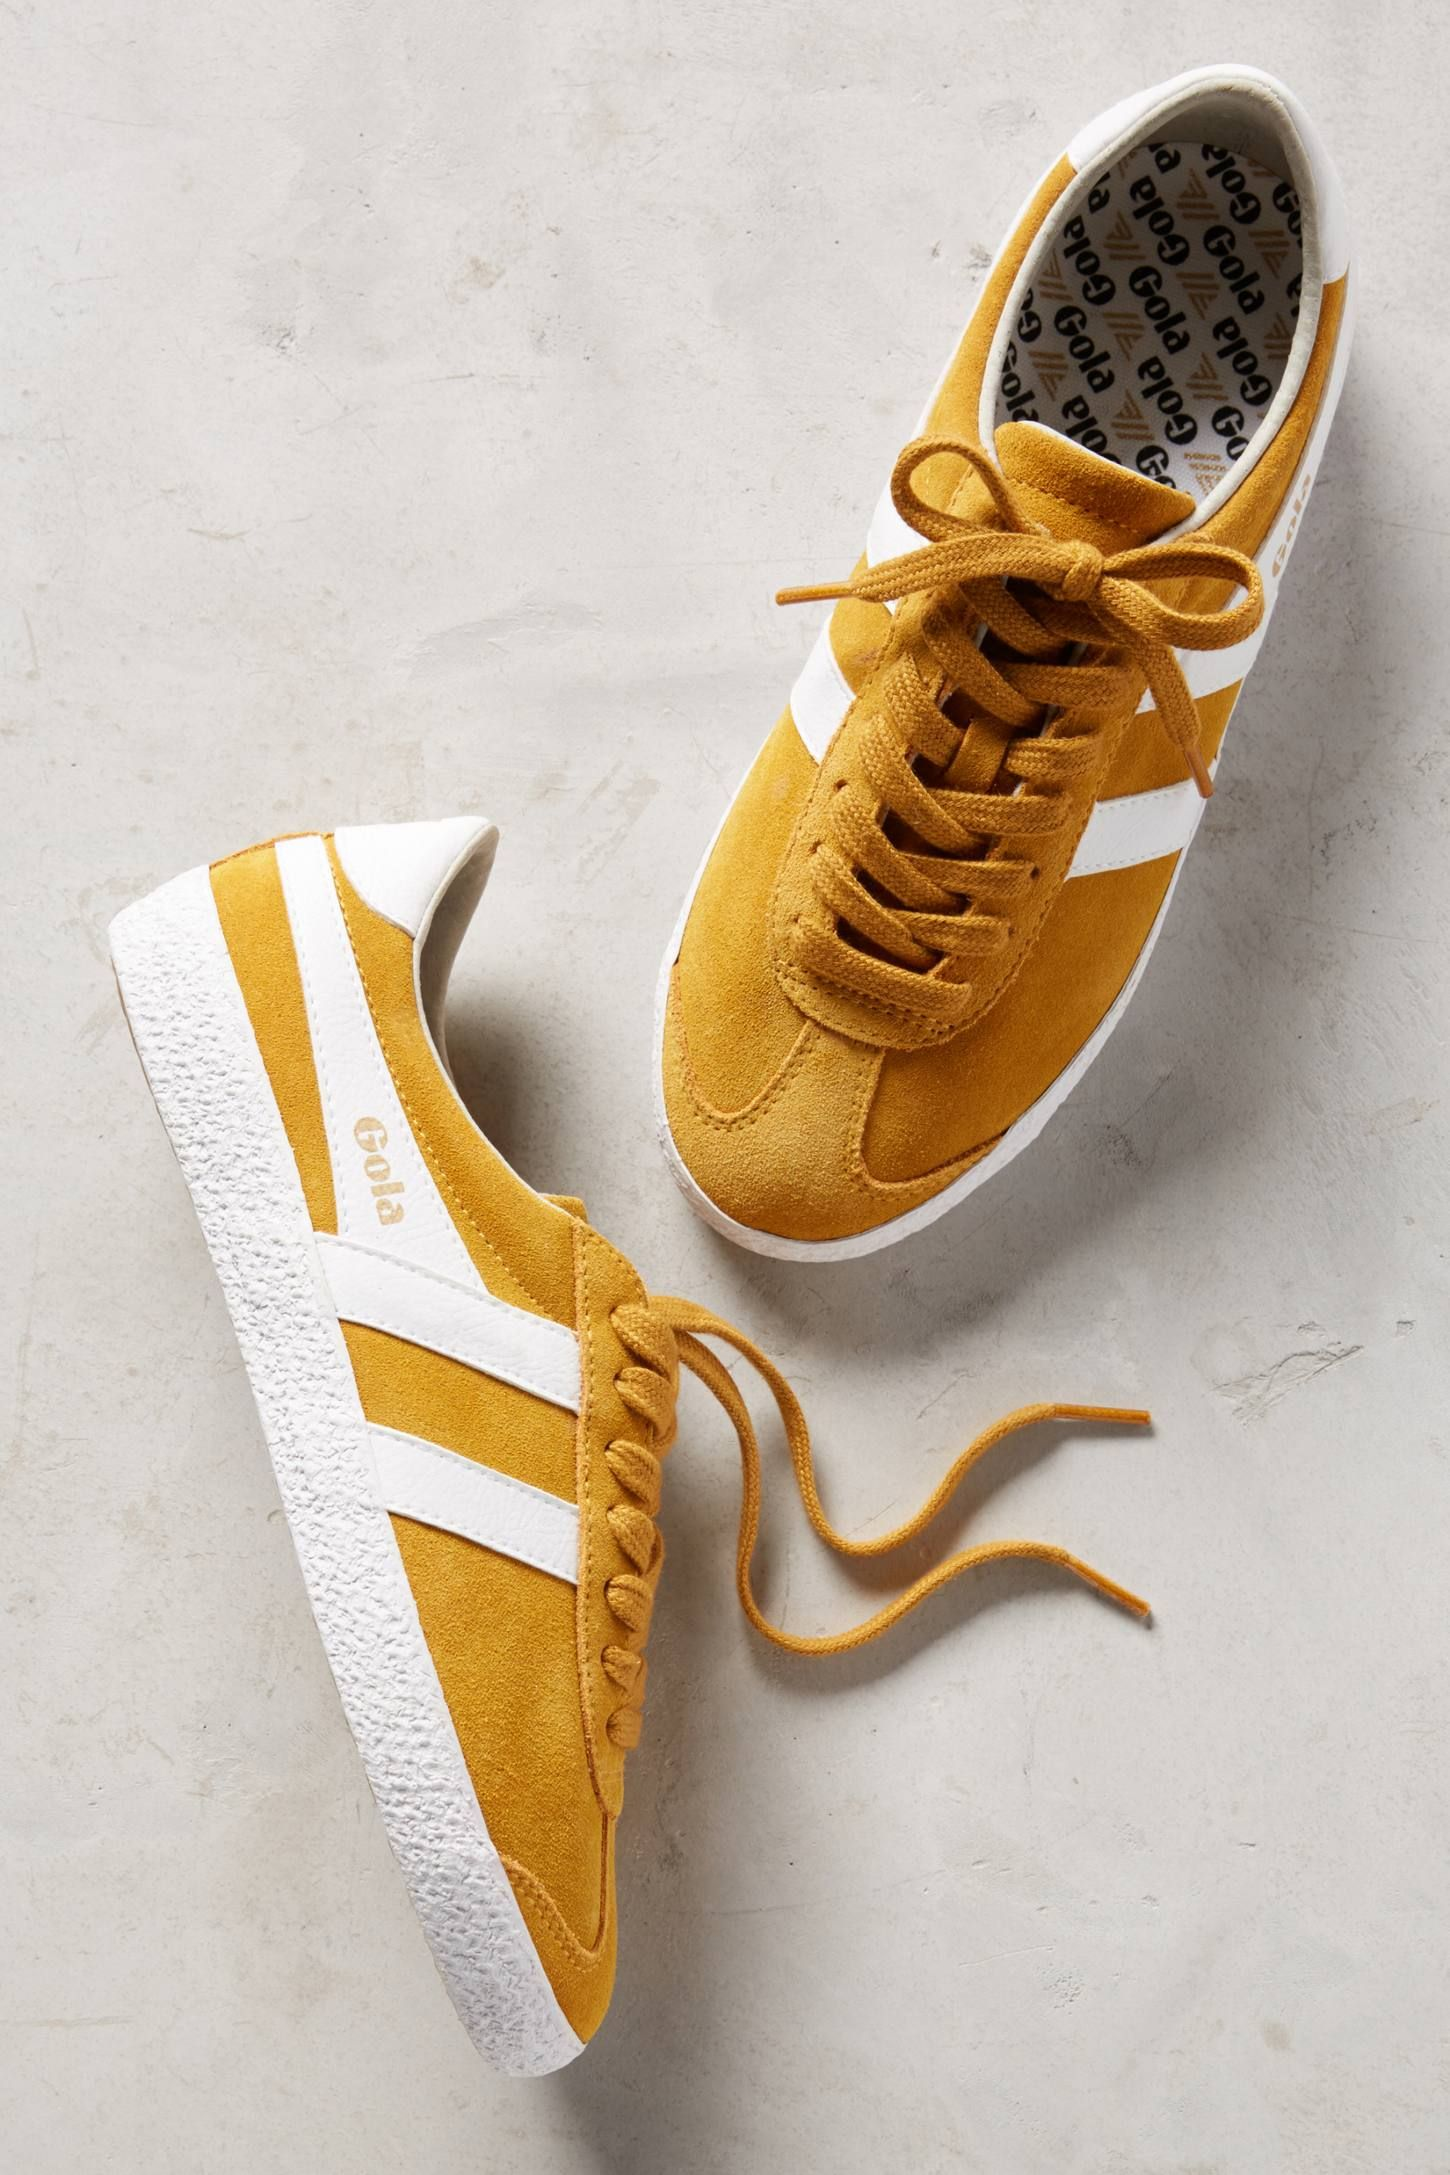 Gola Yellow Suede Sneakers | Yellow